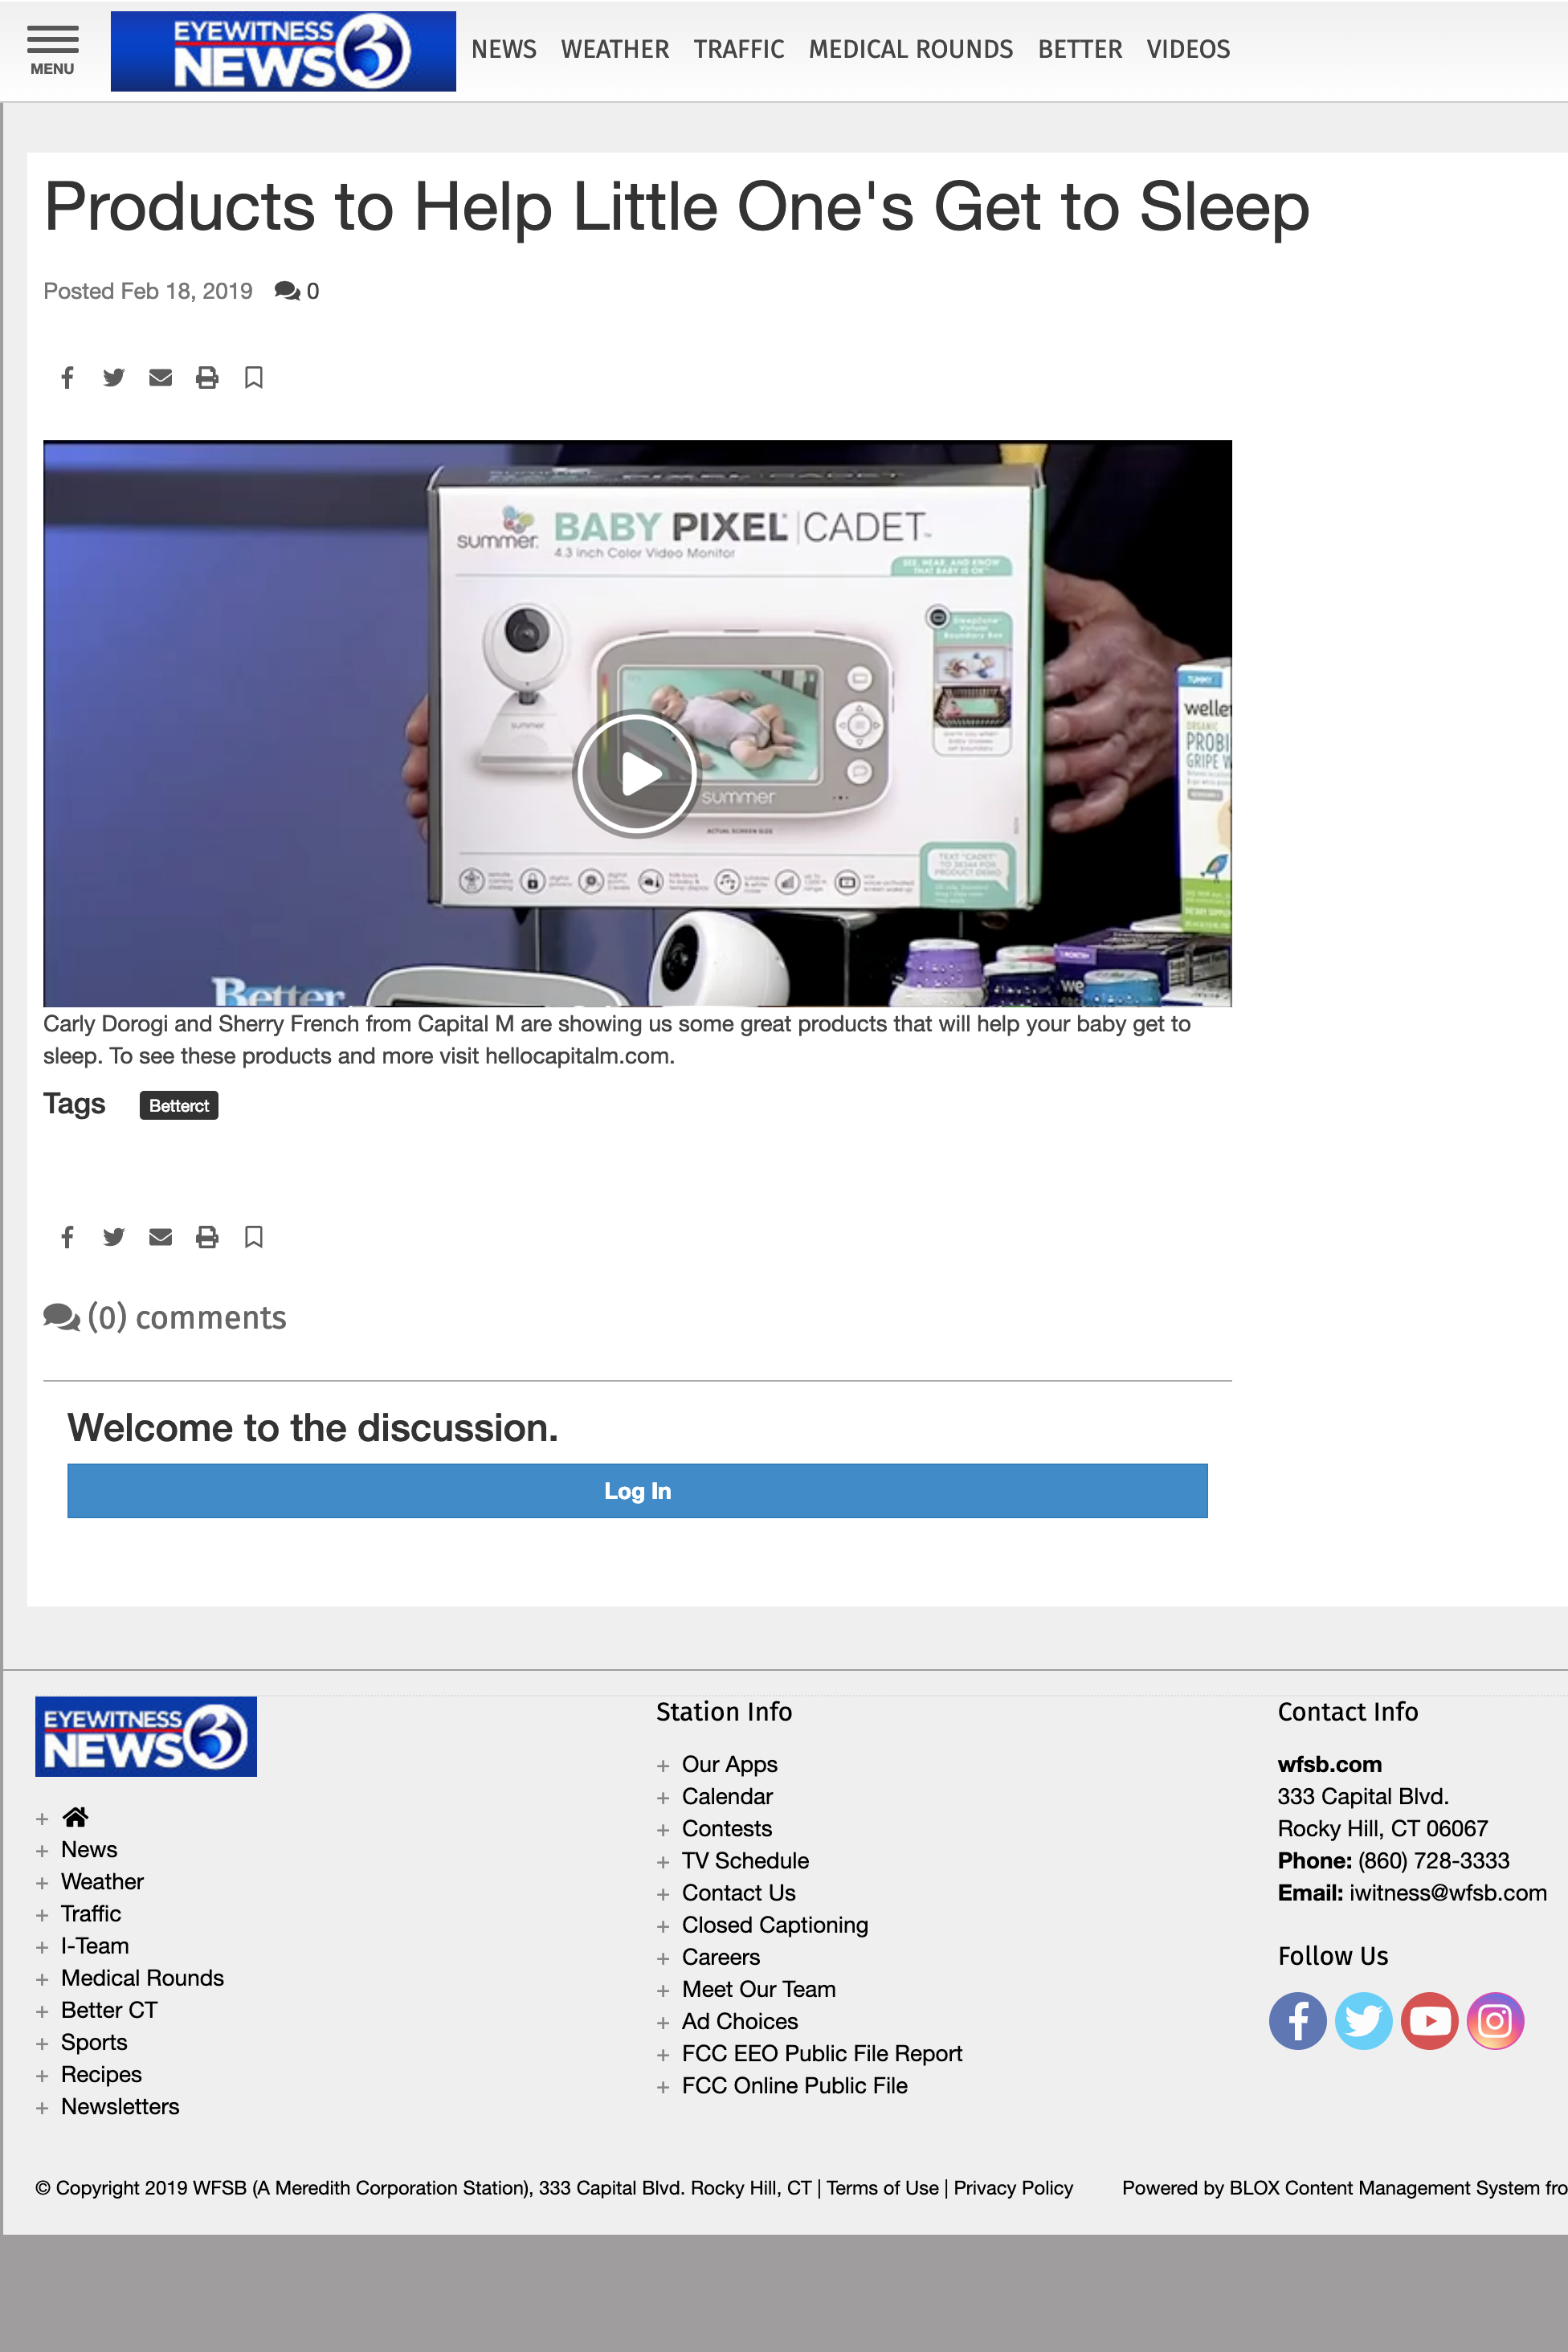 2019.02.18_WFSB-TV (CBS 3) Hartford, CT Better Connecticut Online_Summer Baby Pixel Cadet Video Monitor_cropped 2x3.png